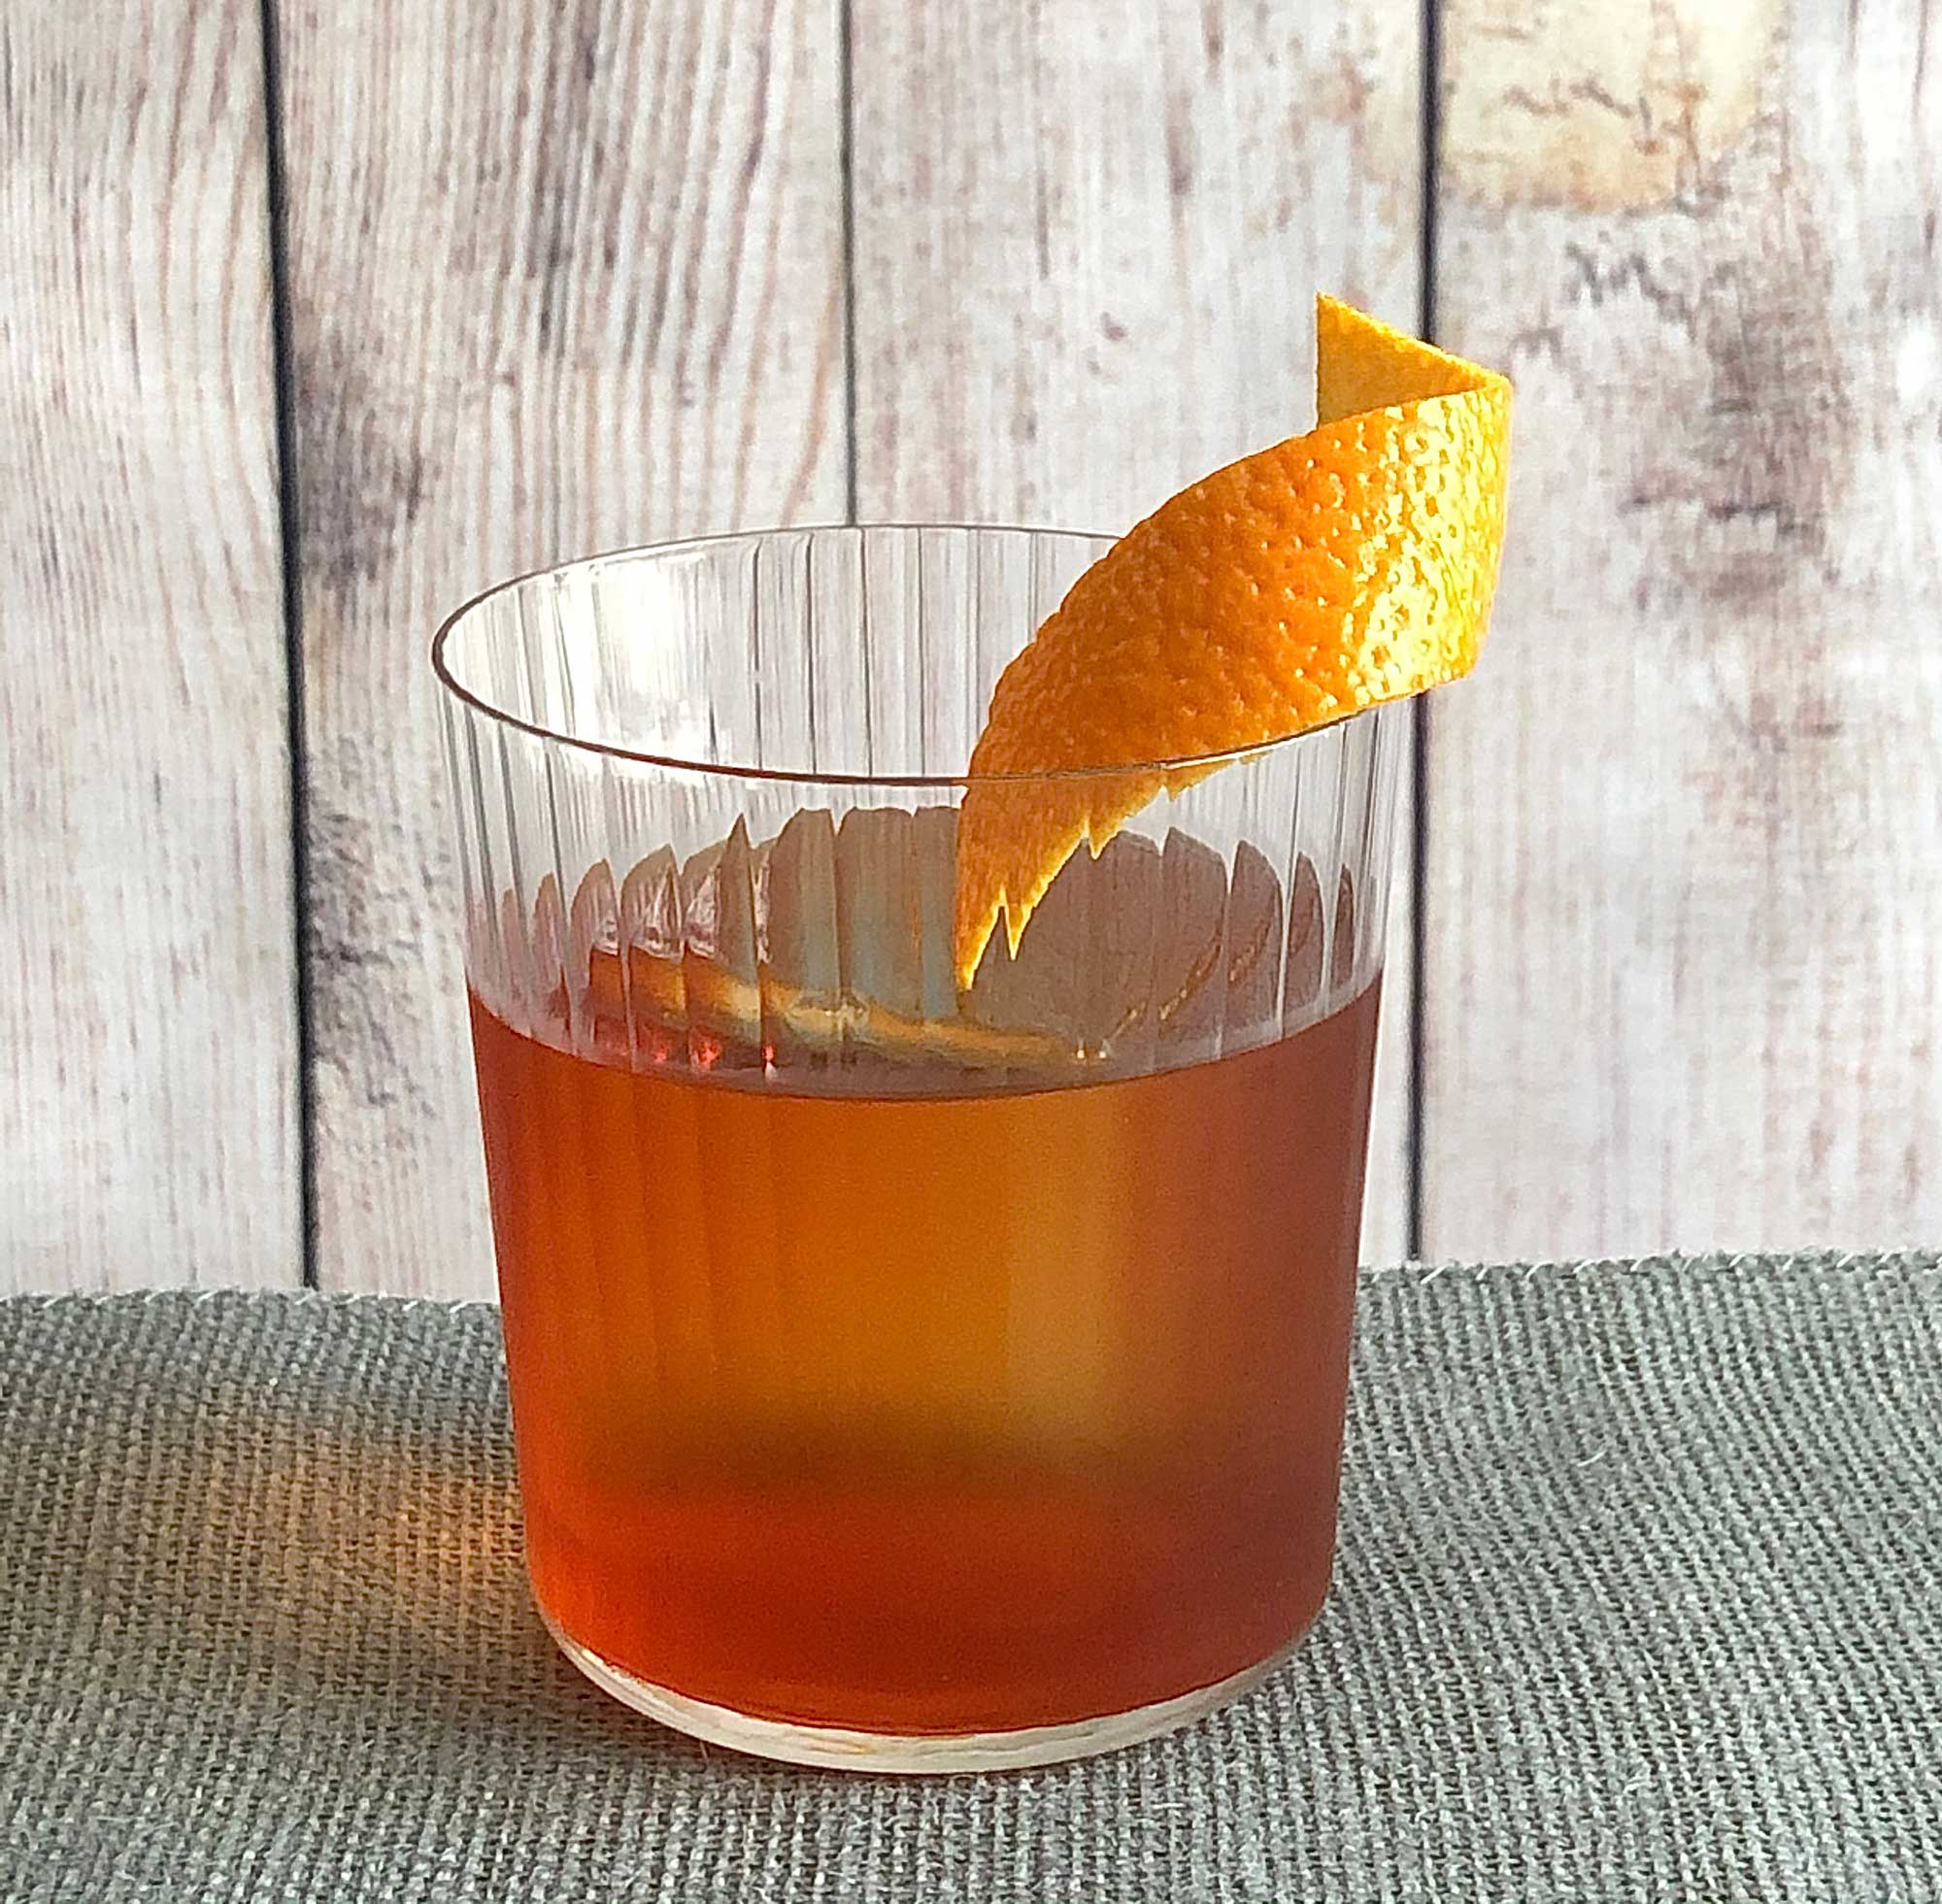 An example of the Boulevardier, the mixed drink (cocktail) featuring Mattei Cap Corse Rouge Quinquina, Aperitivo Cappelletti, and rye whiskey; photo by Lee Edwards